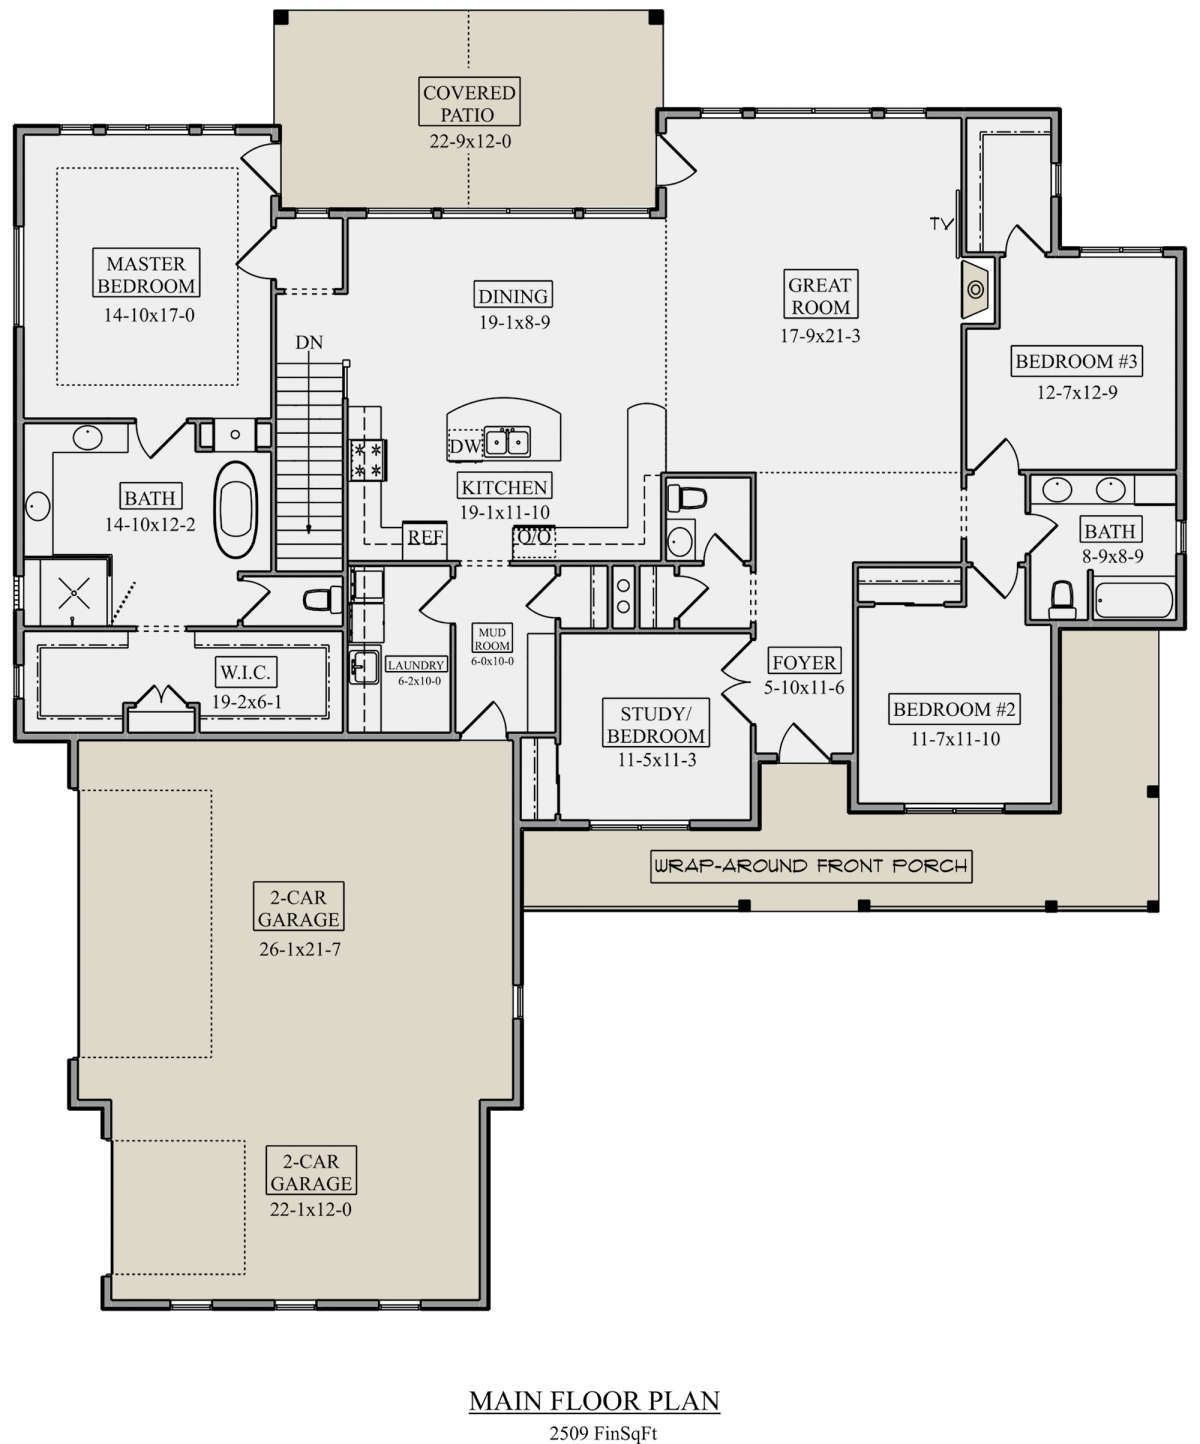 House Plan 5631 00109 Ranch Plan 2 509 Square Feet 3 5 Bedrooms 2 5 Bathrooms Diy Home Decor In 2020 House Plans Square House Plans Ranch House Plans